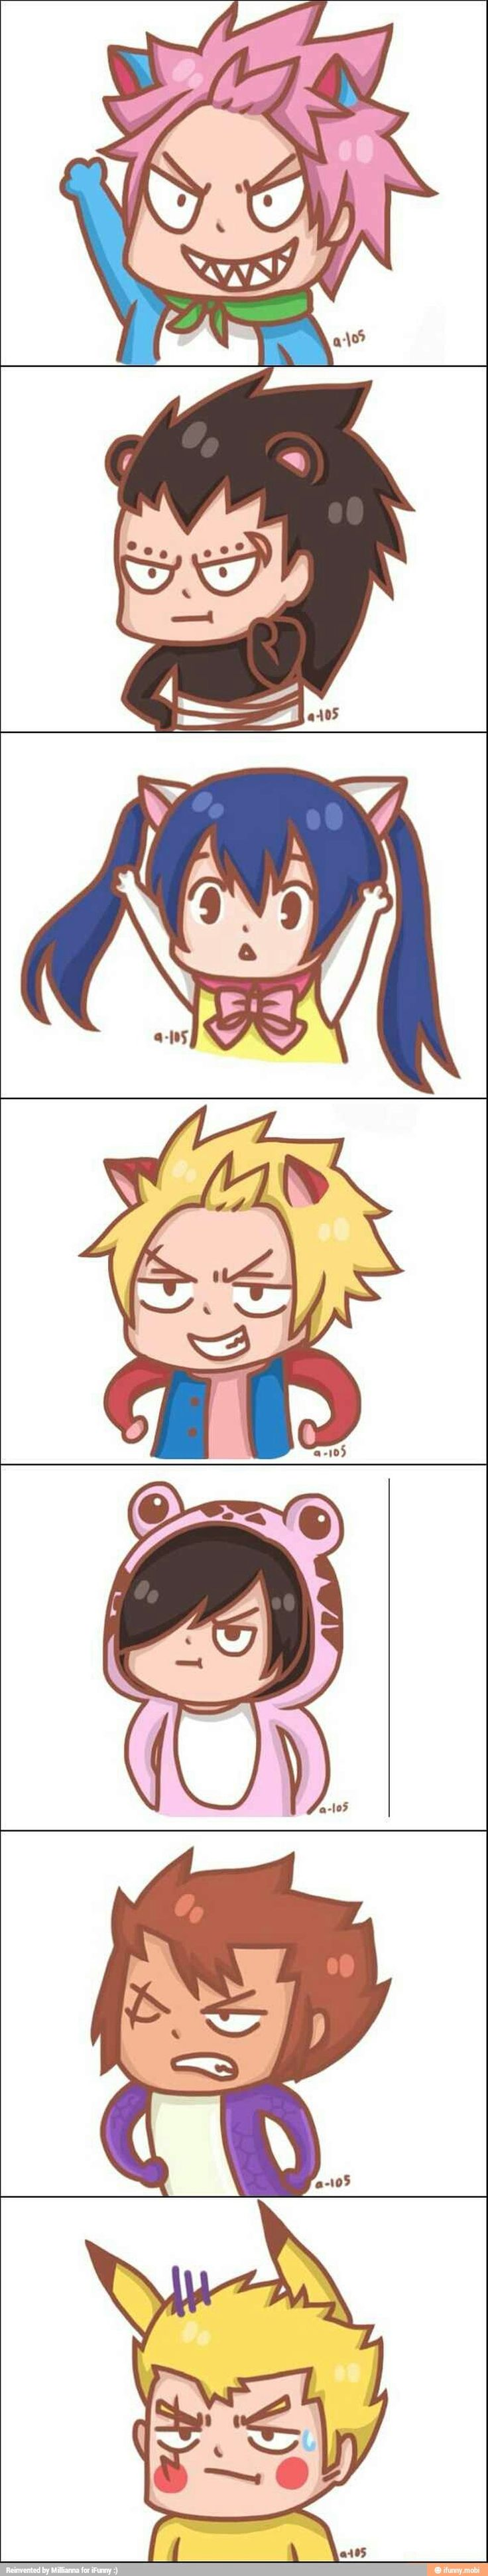 Oh my! Poor laxus XD haha fairytail with a splash of Pokemon